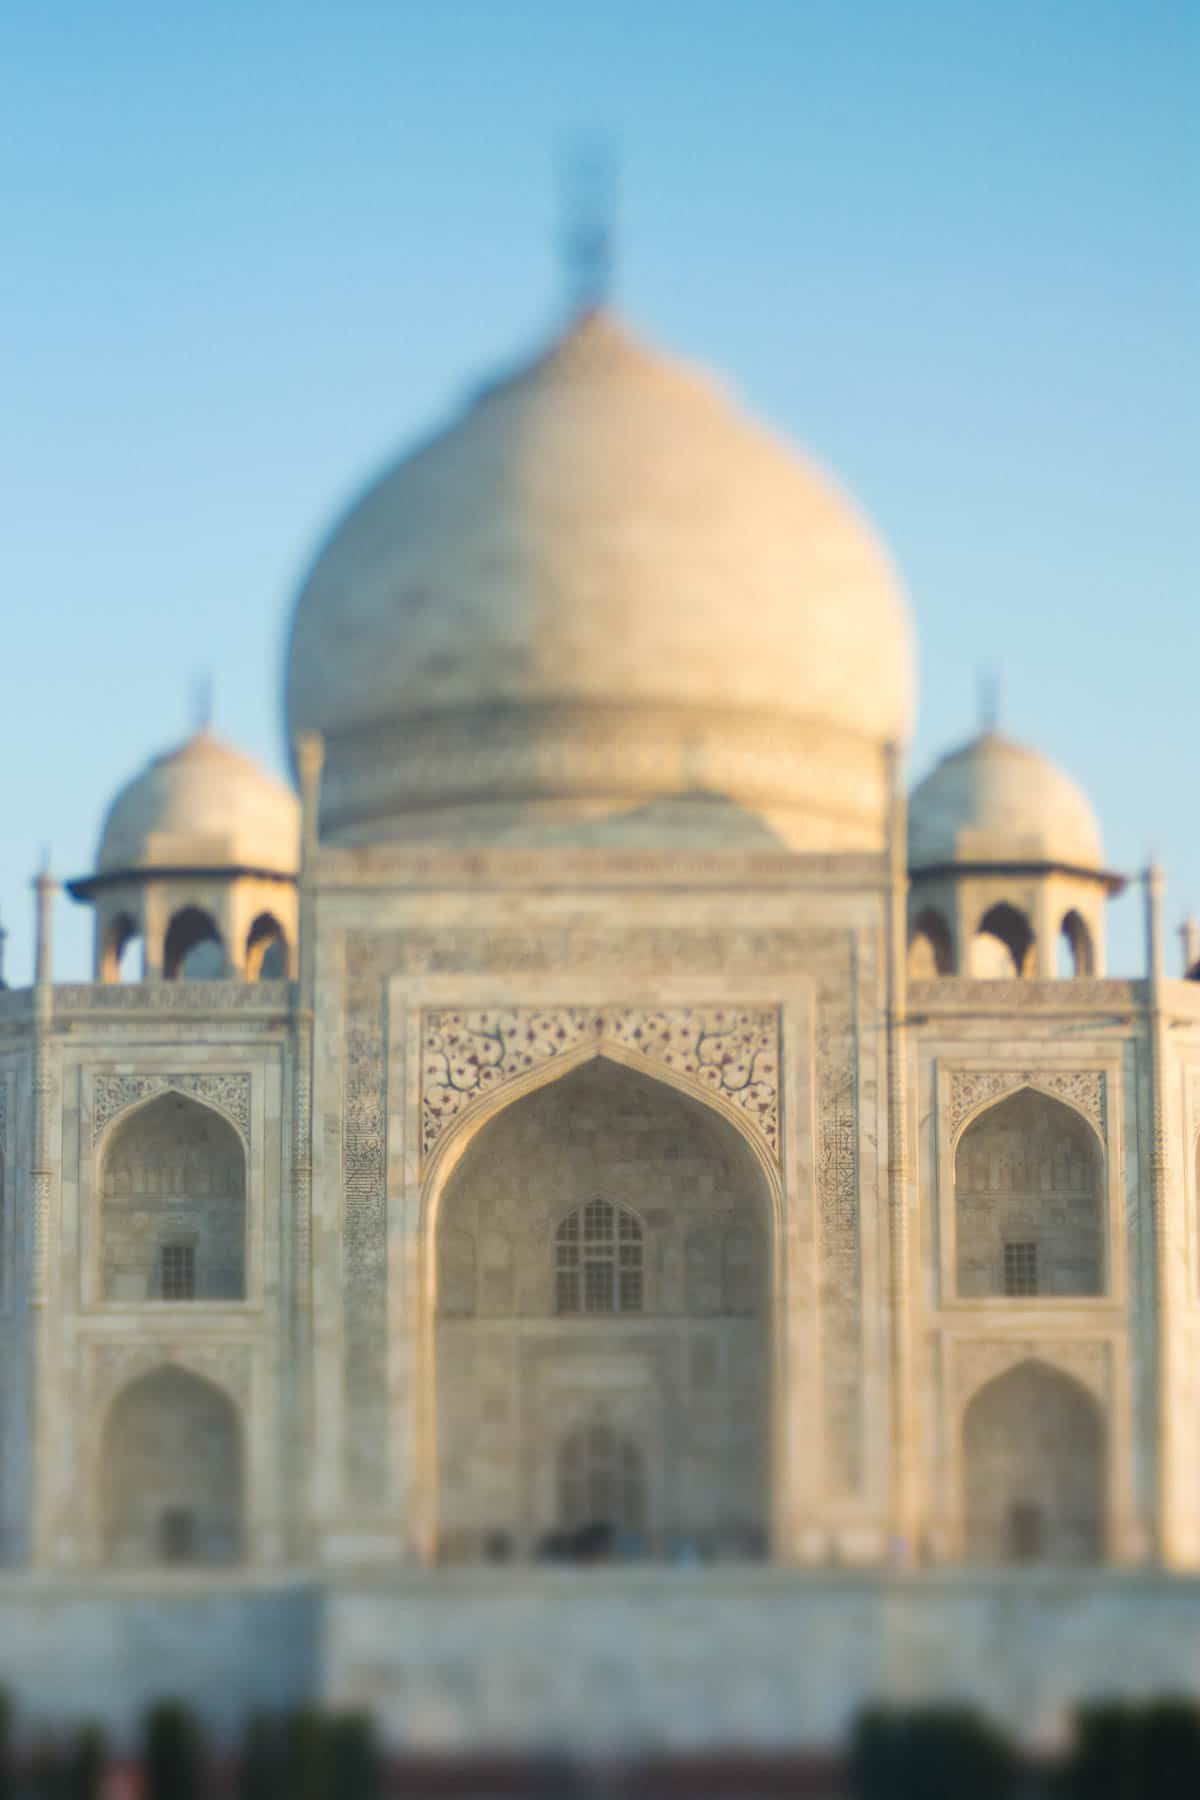 Lensbaby Edge 50 Optic review - Taj Mahal front via the Lensbaby Edge 50 Optic in Agra, India - Lost With Purpose